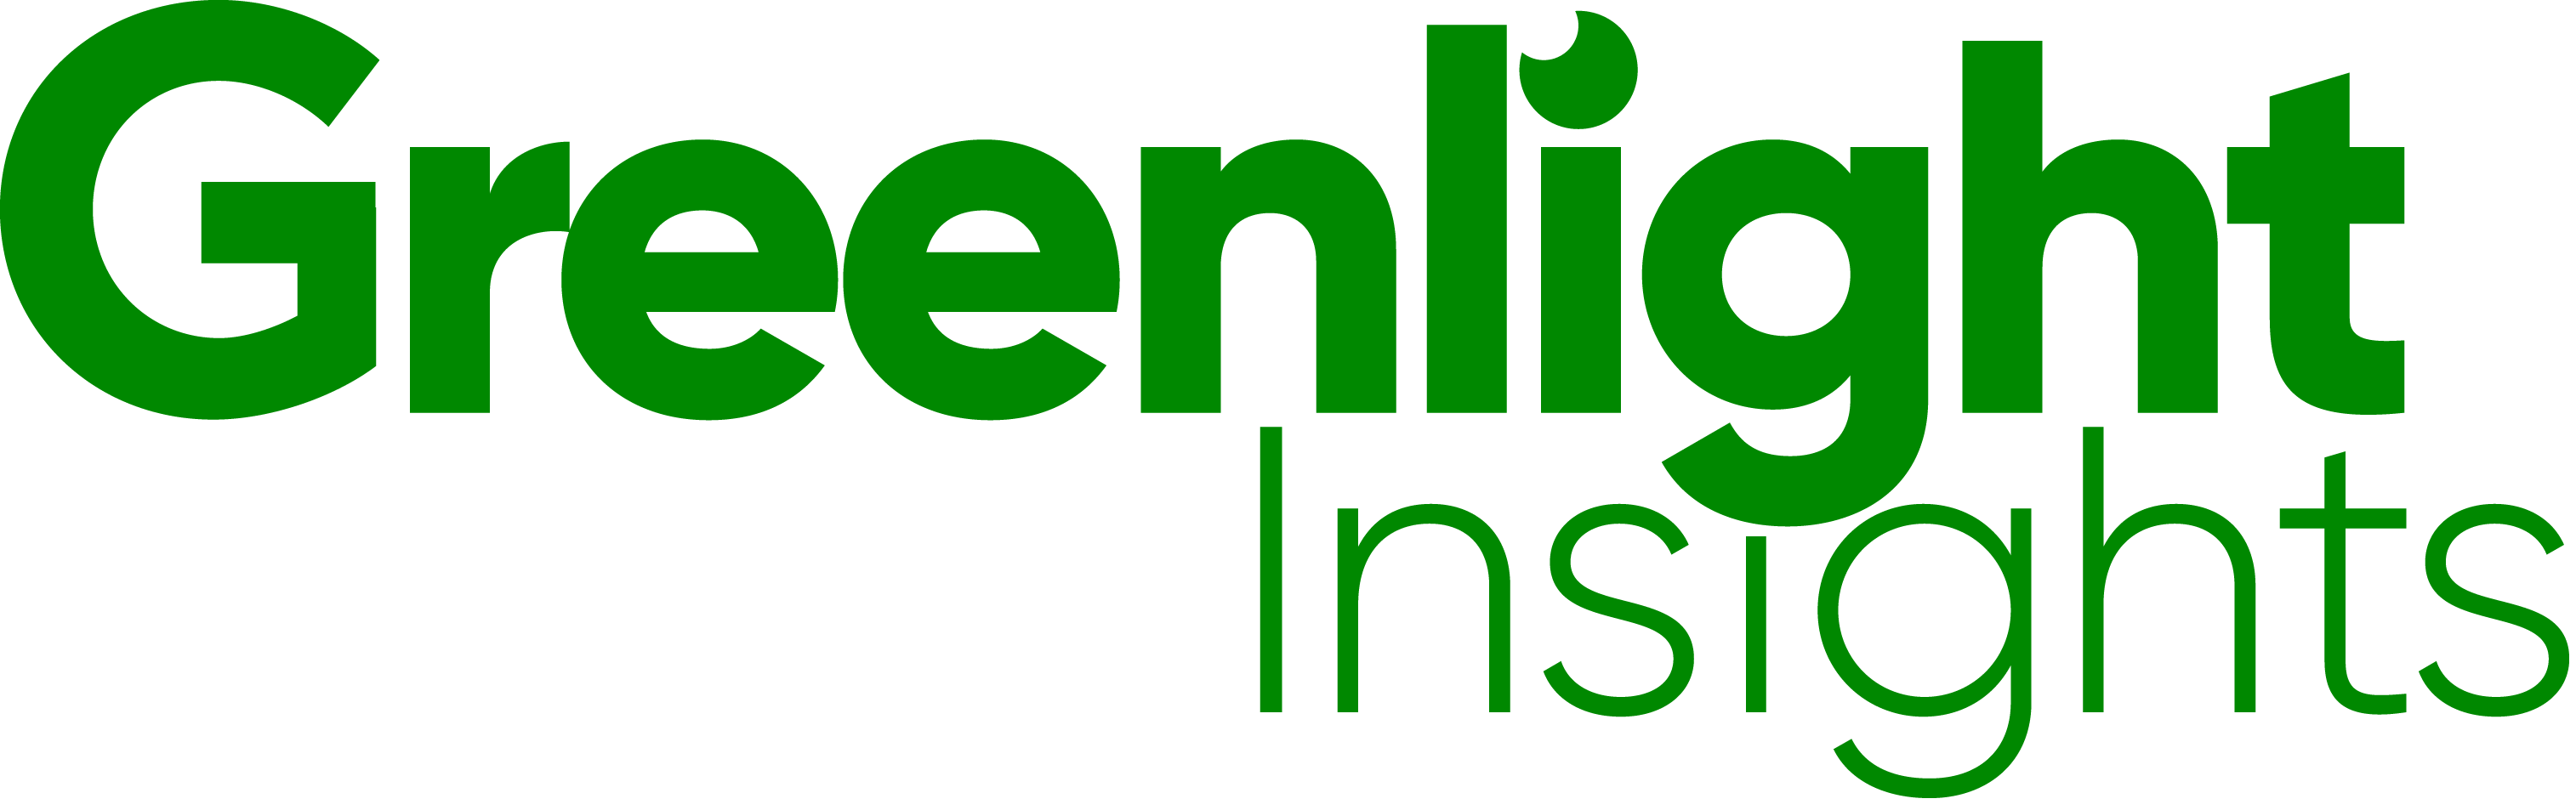 xRS Week 2019 Sponsor - Greenlight Insights